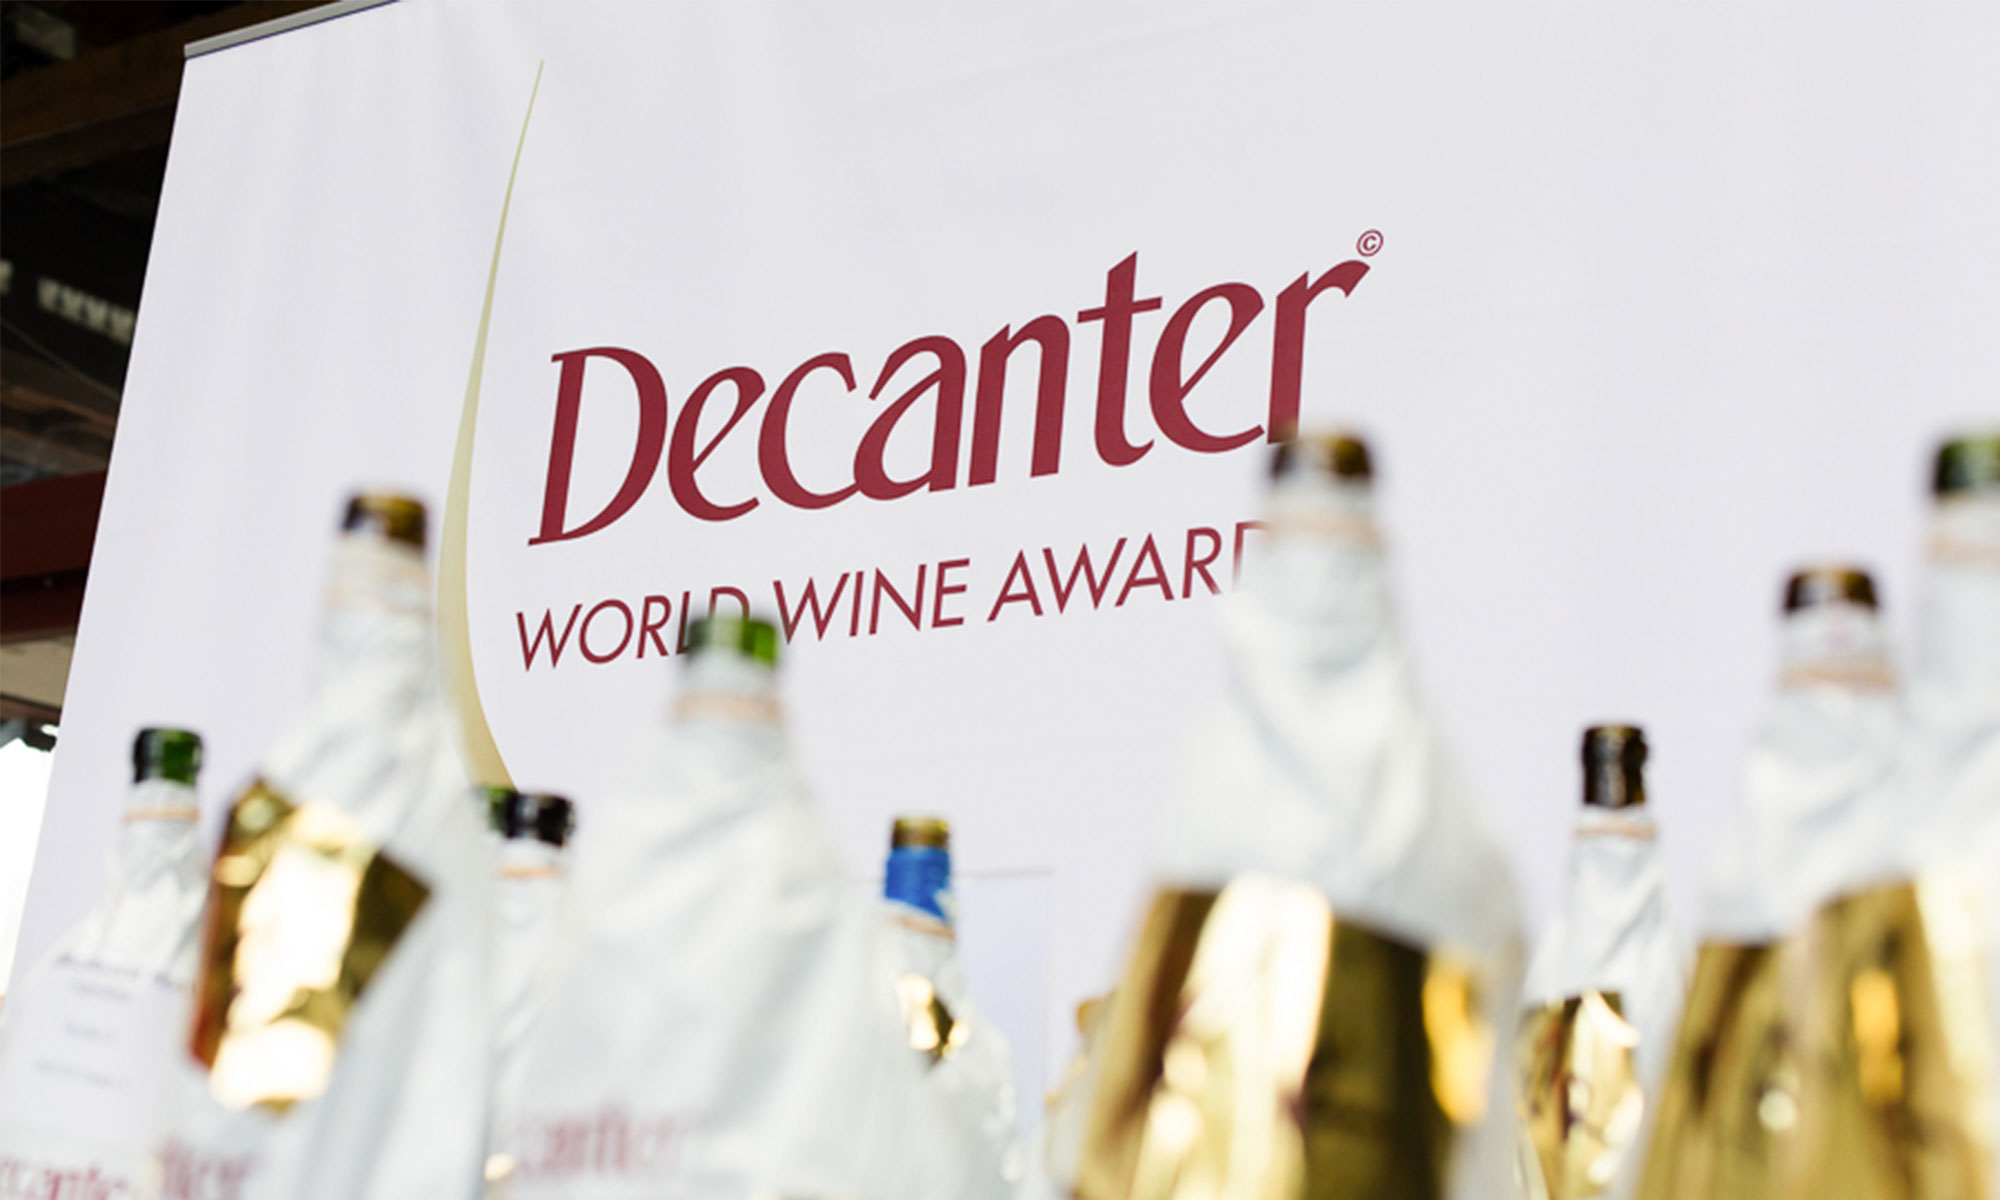 MEDALLA DE BRONCE EN EL DECANTER WINE AWARDS 2017 PARA RAMÓN DO CASAR